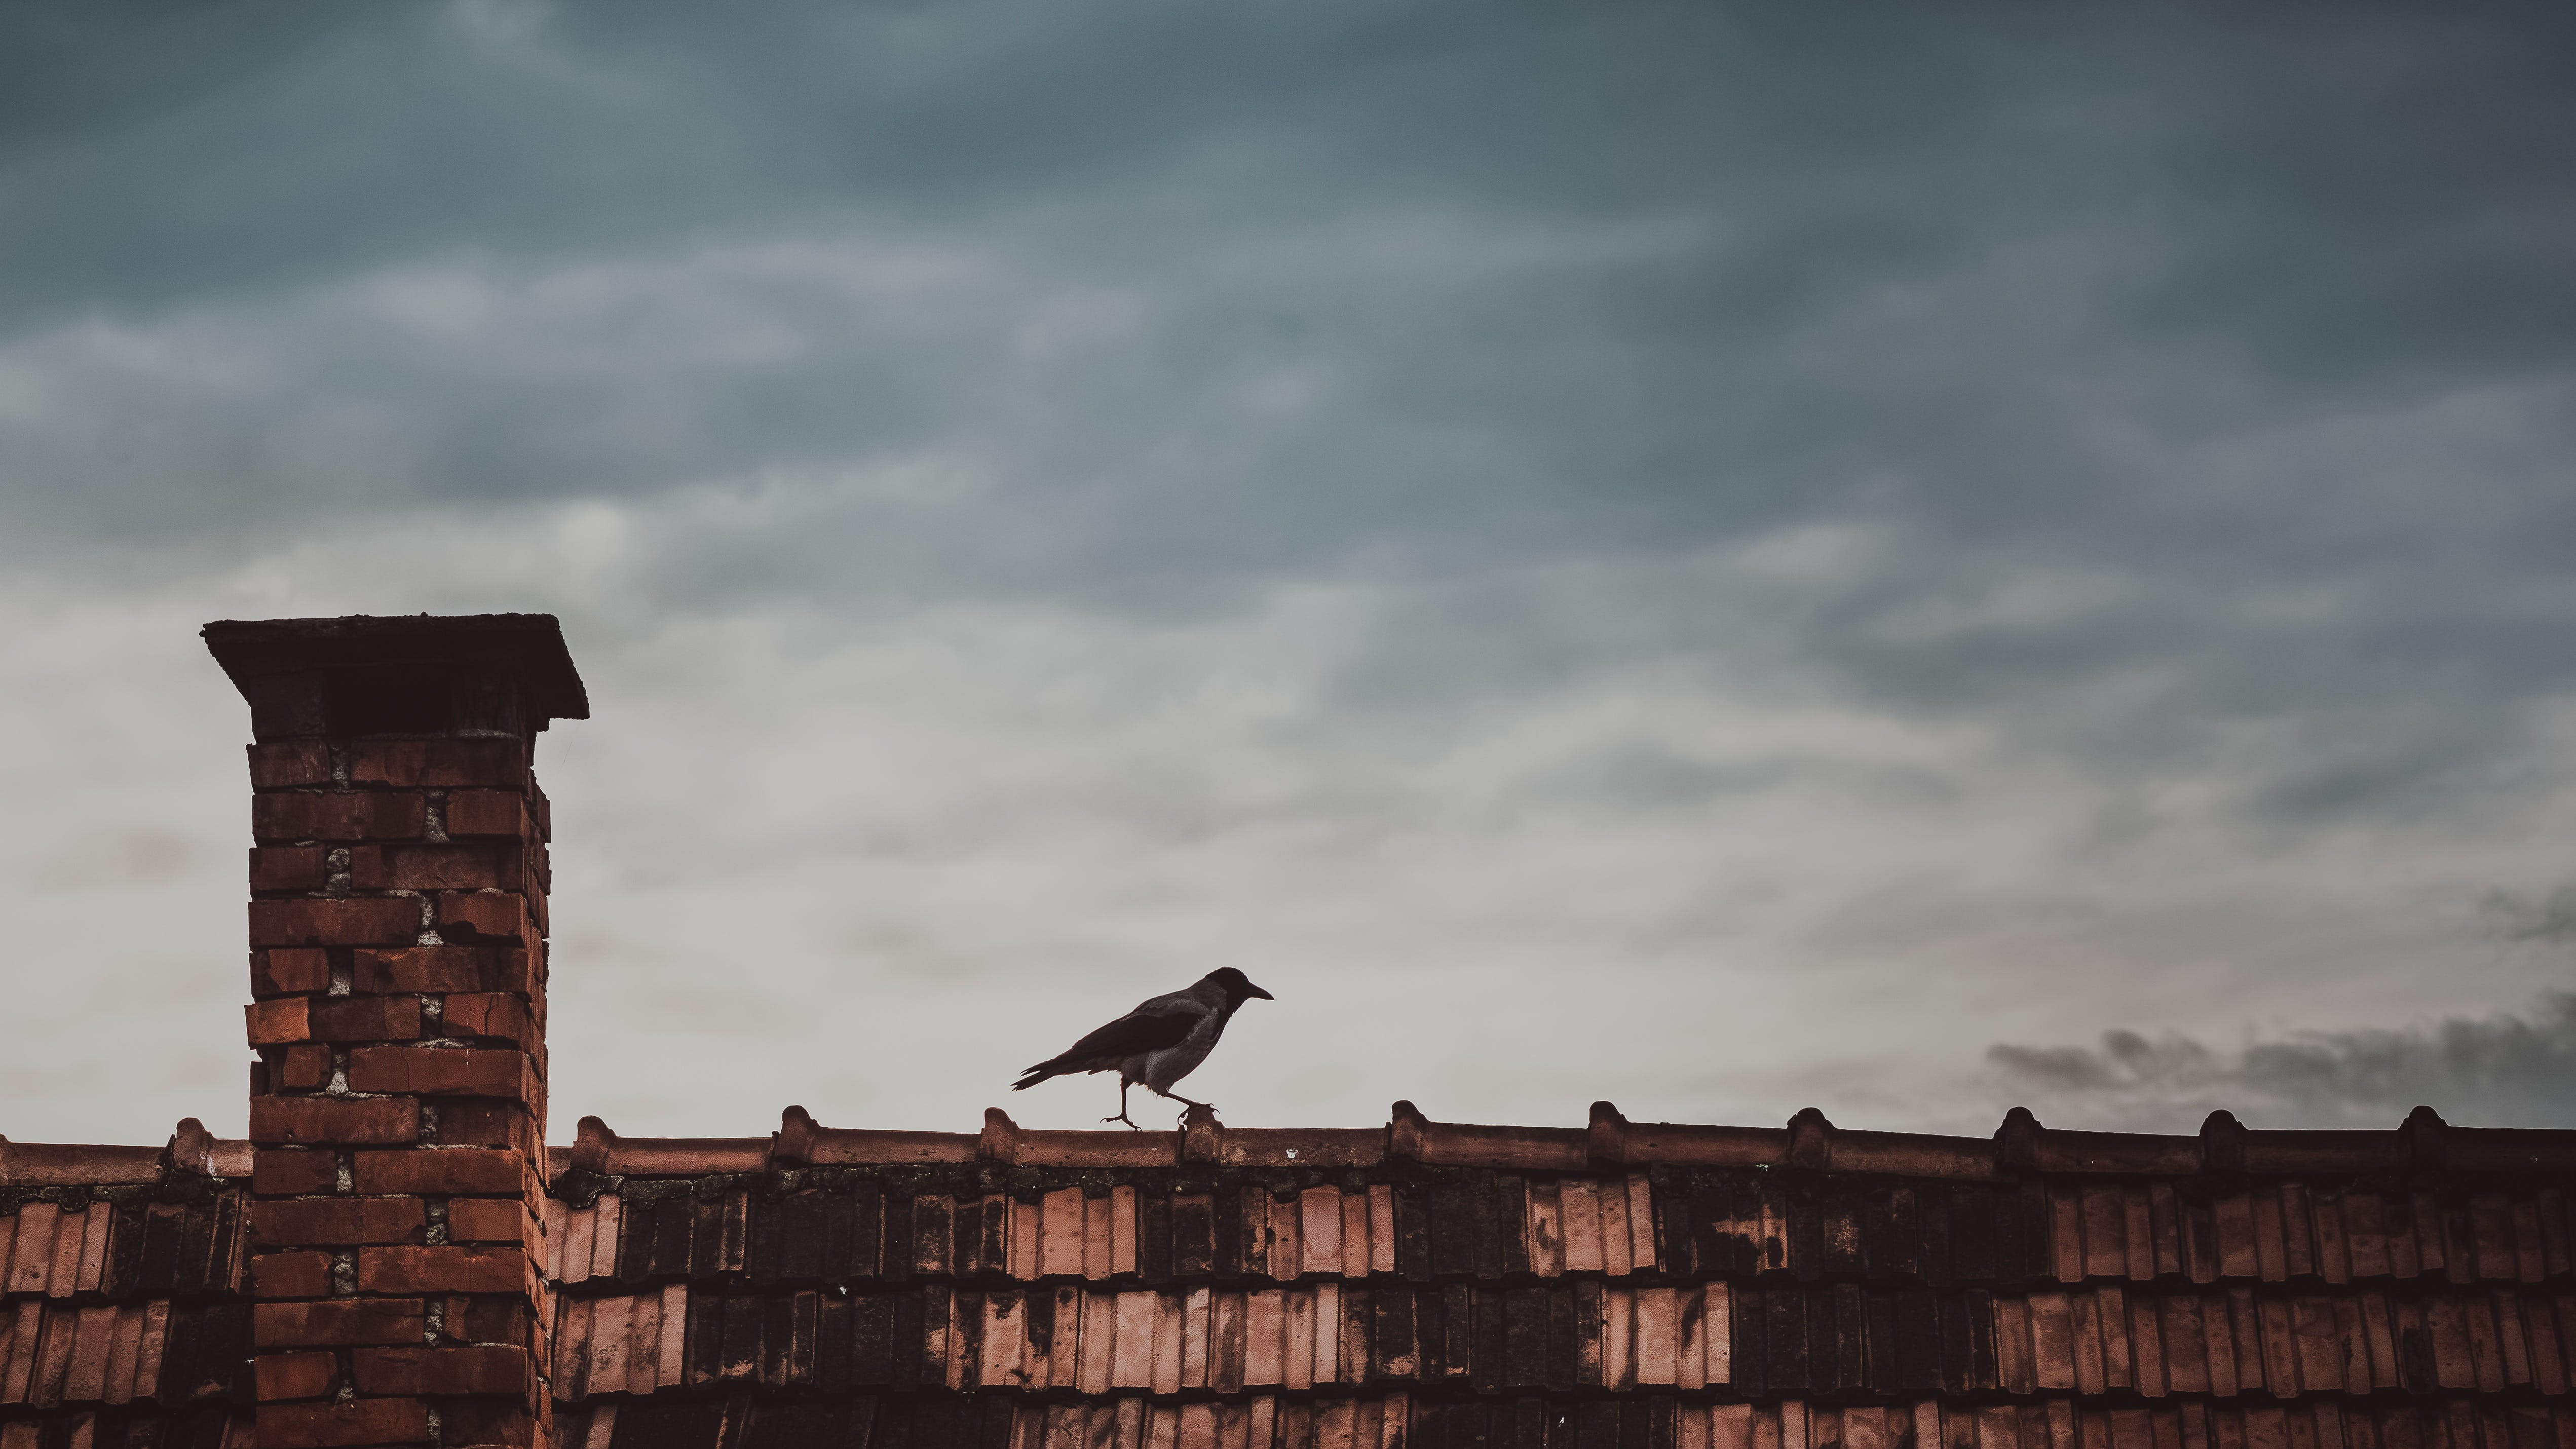 Free stock photo of sky, bird, clouds, roof